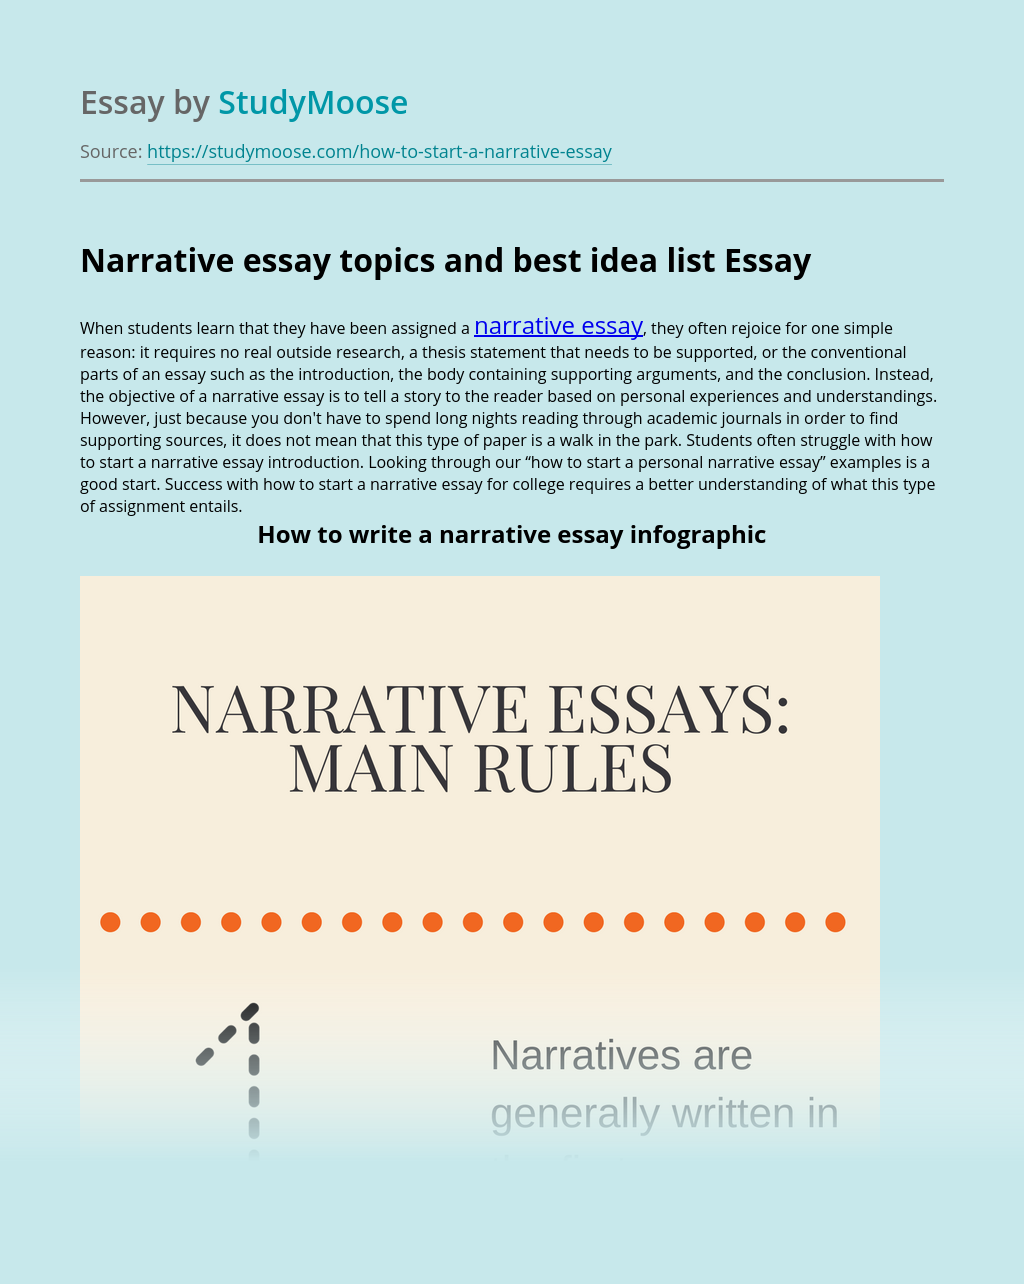 Narrative essay topics and best idea list